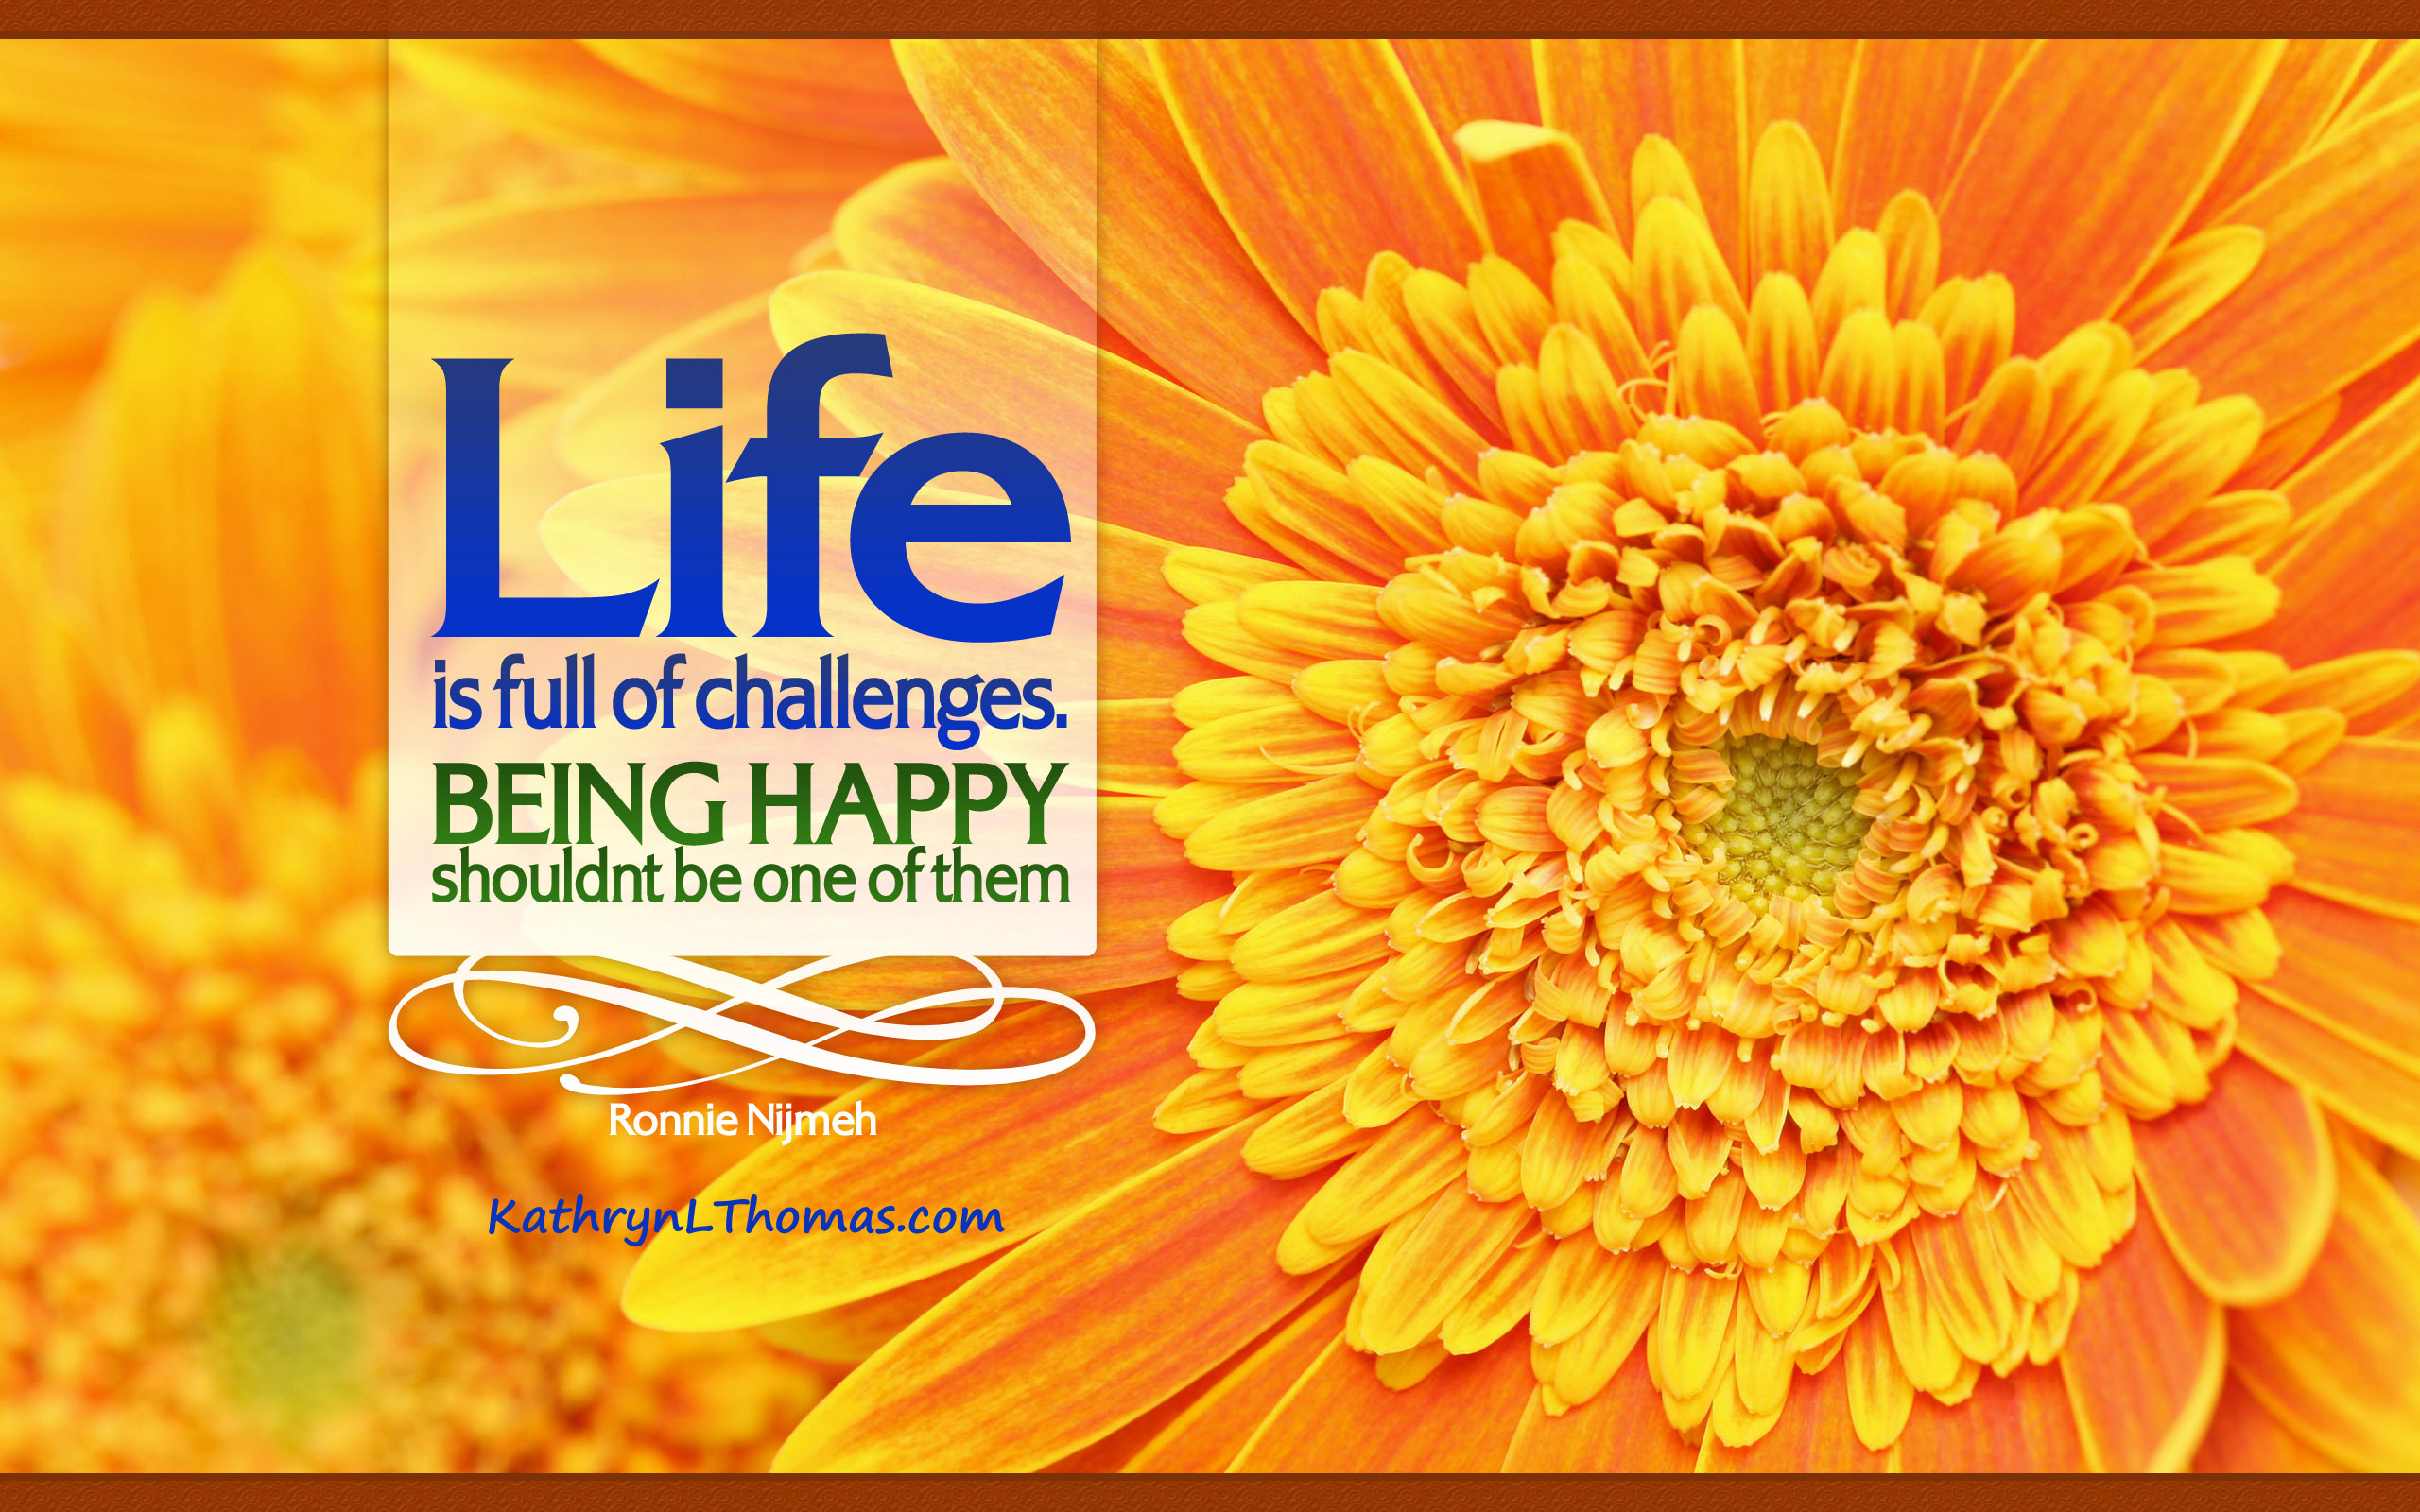 Ronnie Nijmeh quote about being happy